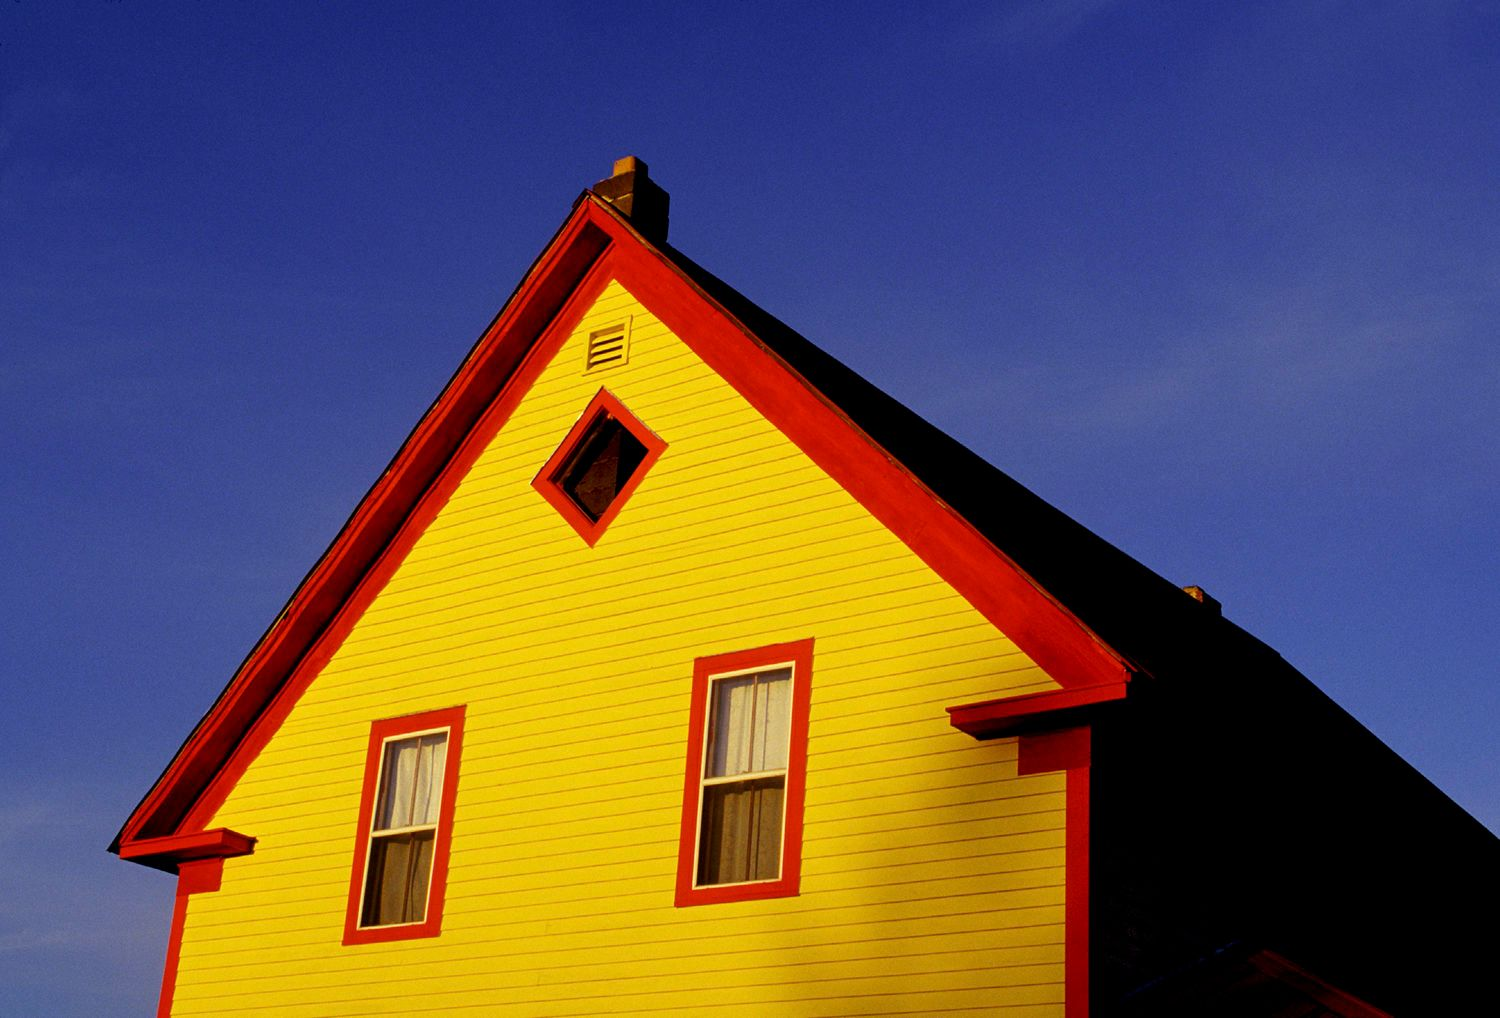 Red Trim and Yellow Painted House